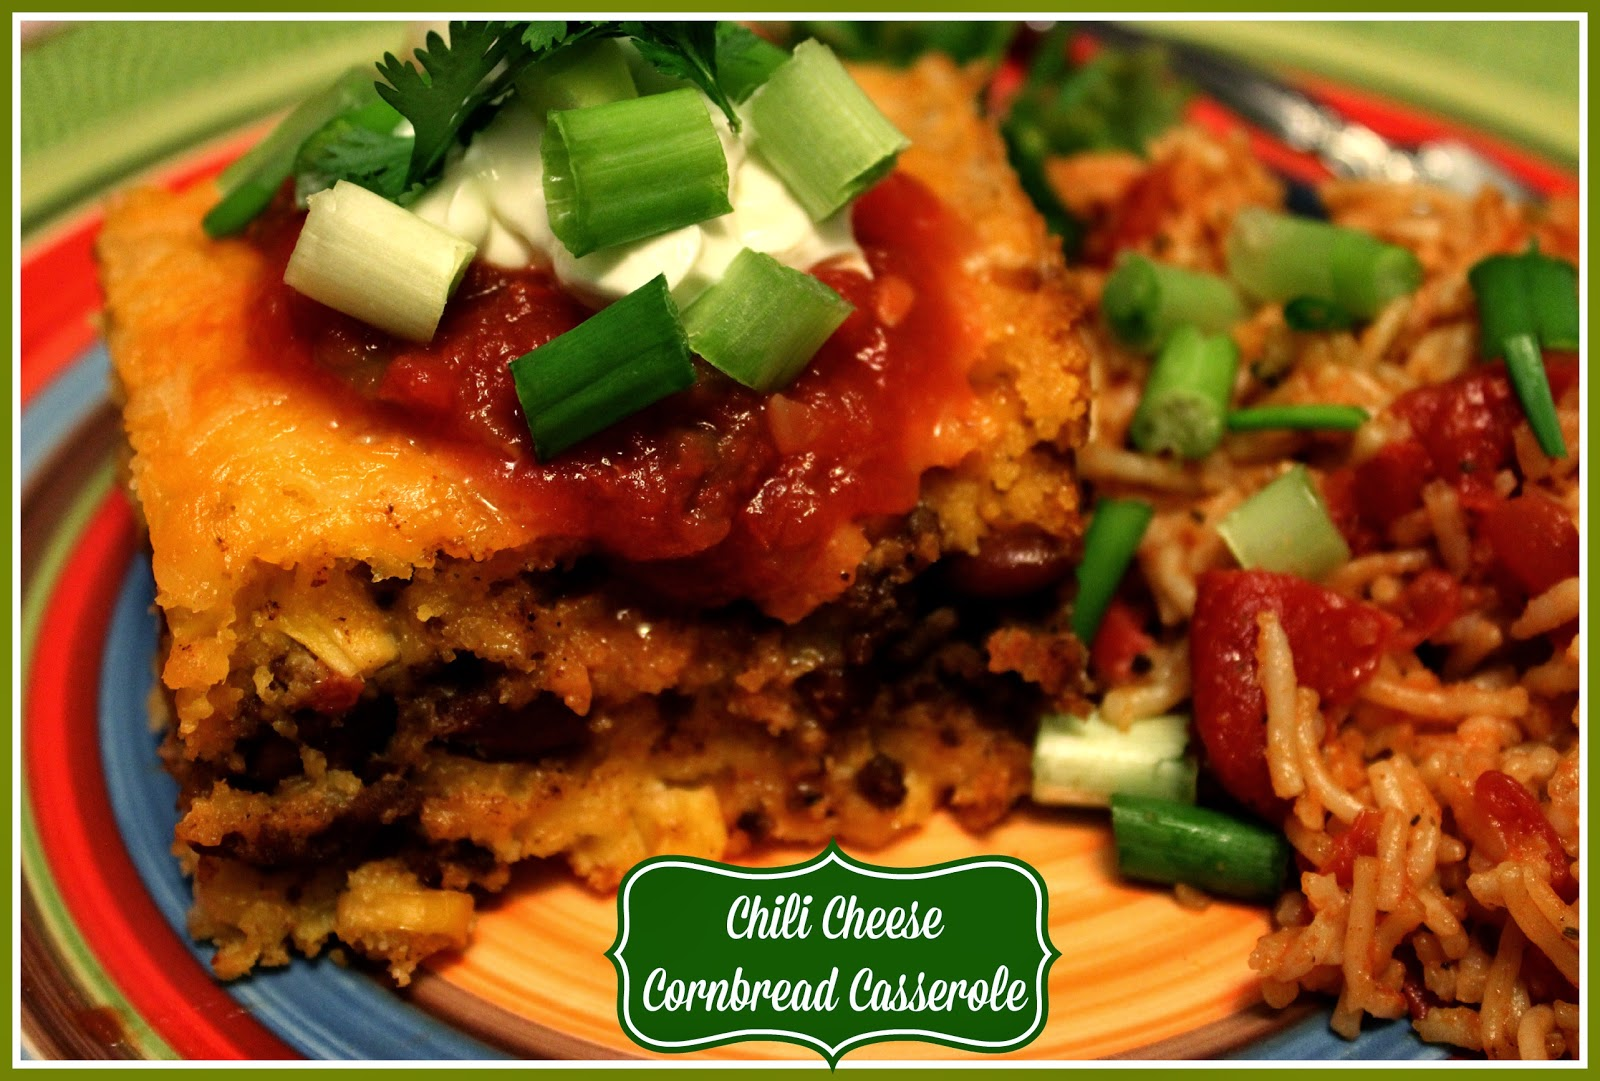 Sweet Tea and Cornbread: Chili Cheese Cornbread Casserole!